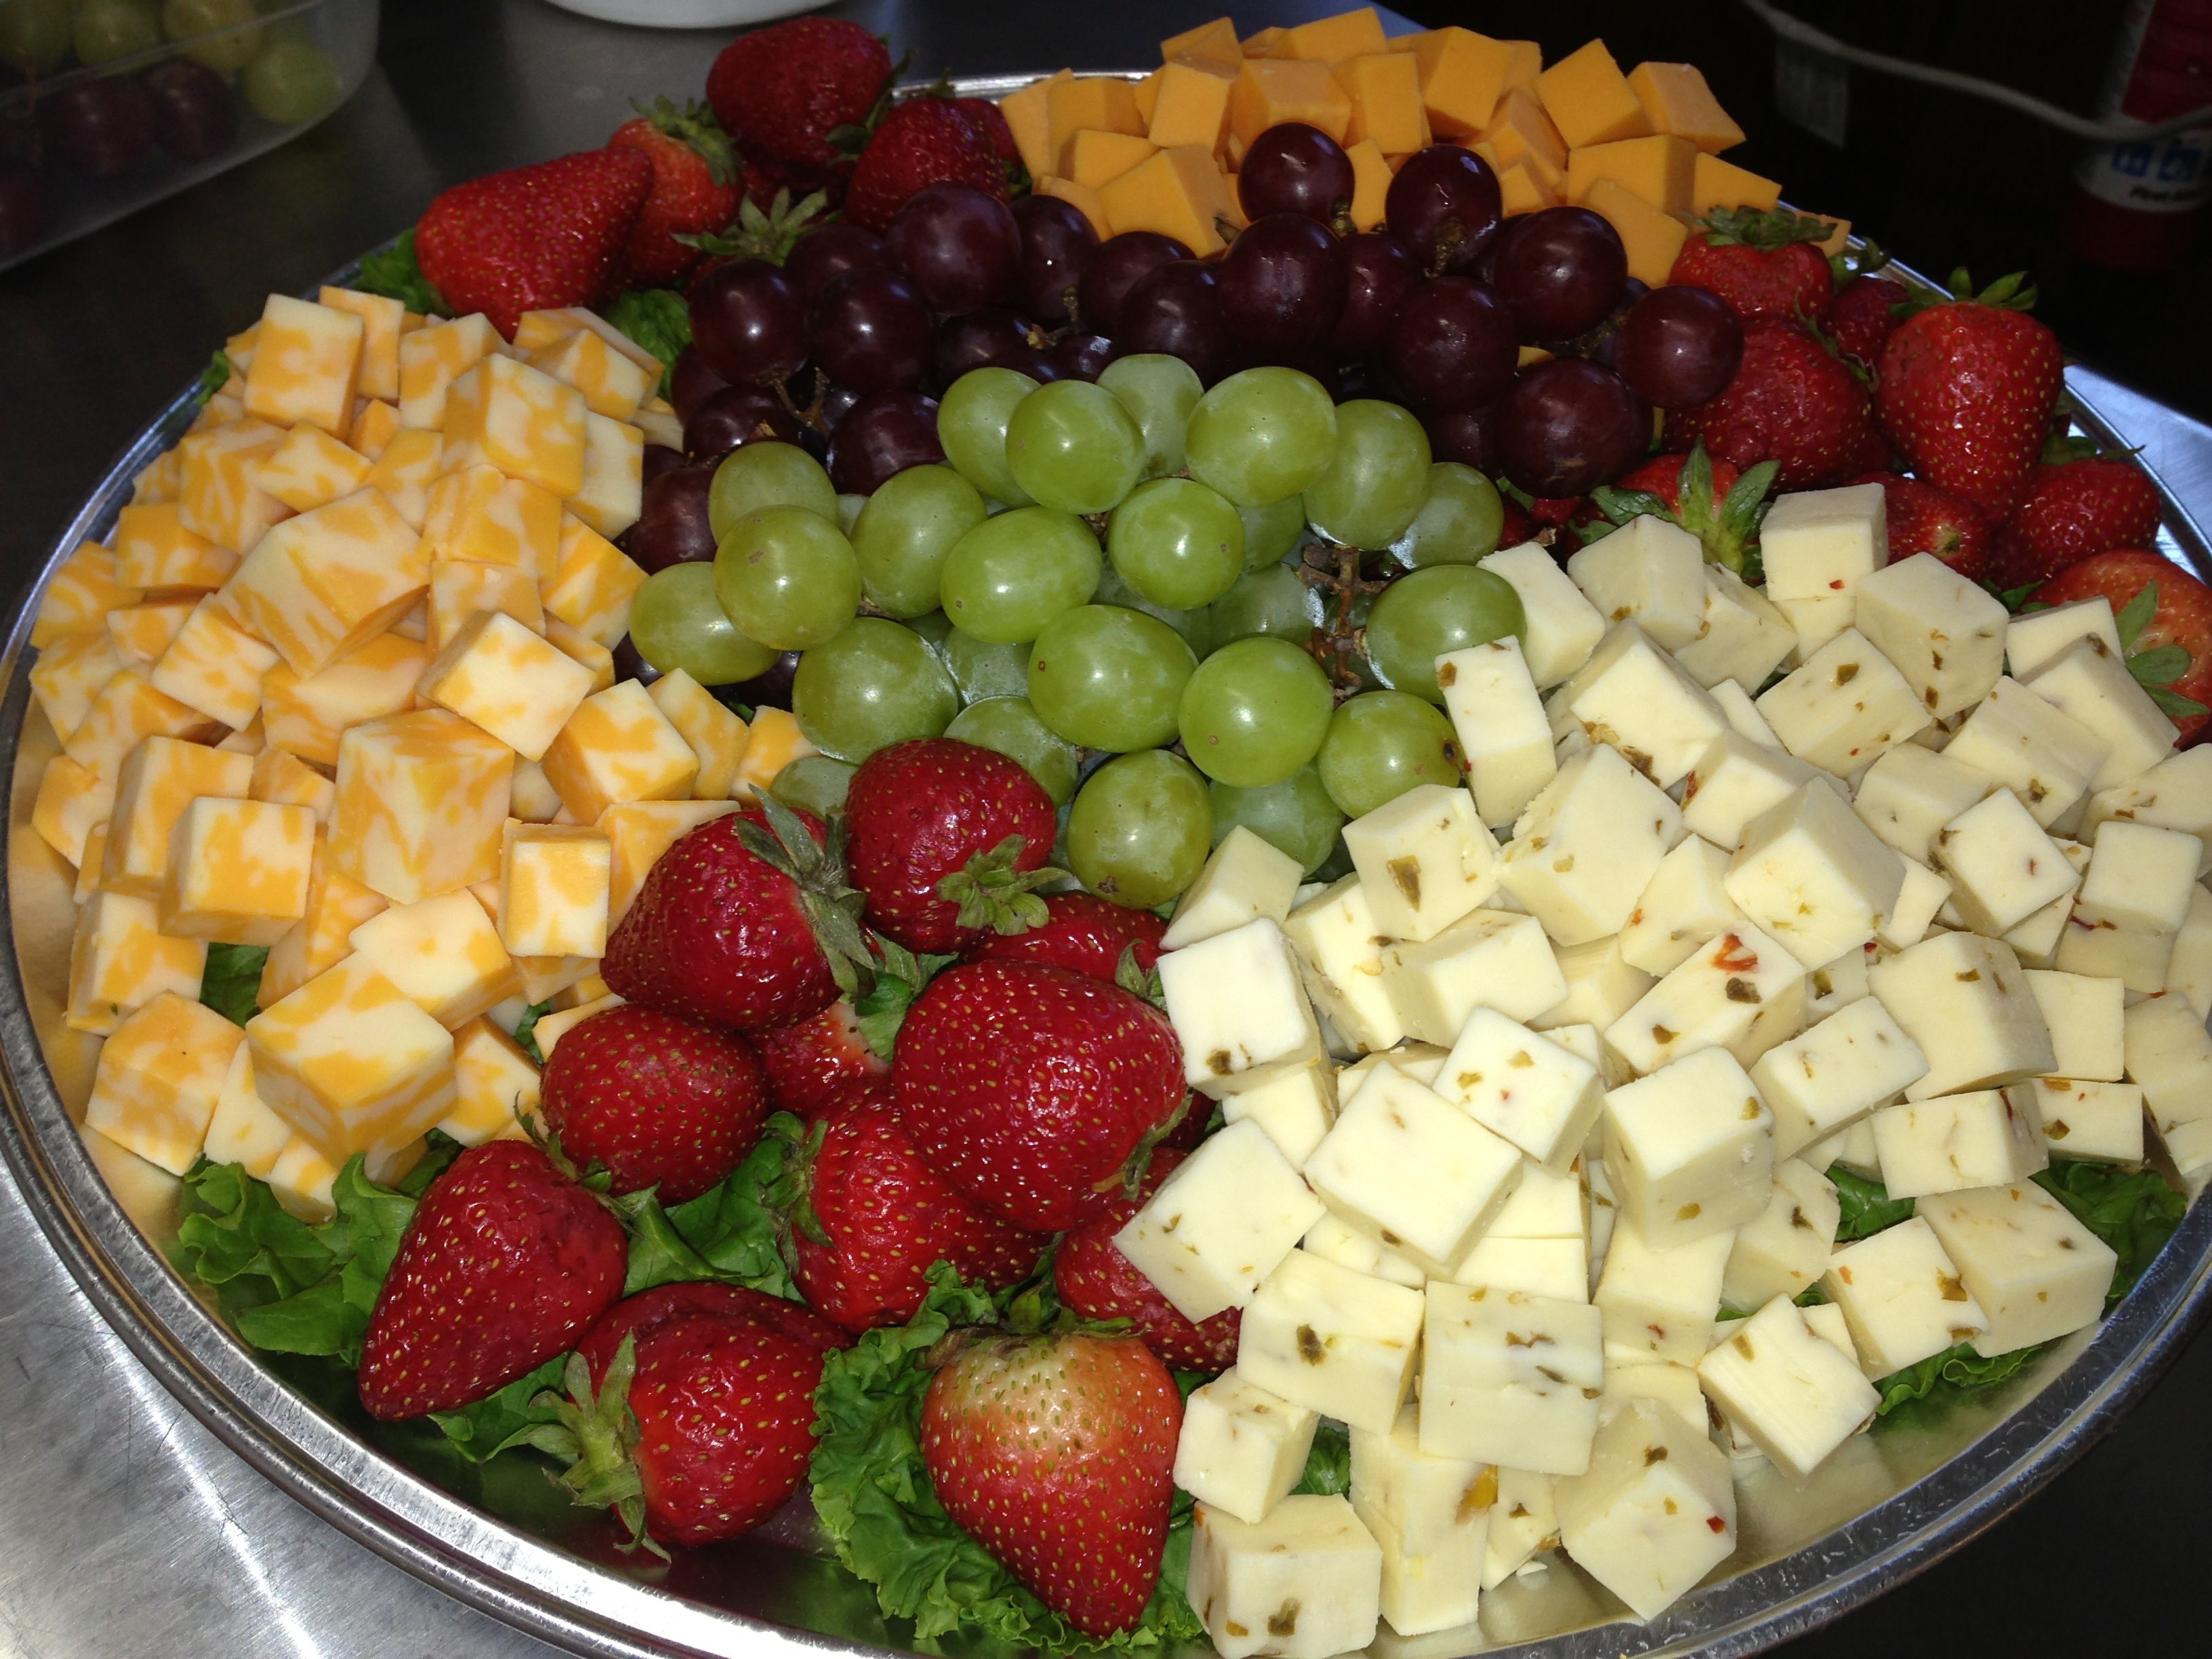 cheese and fruit platter ideas for weddings | Kitchen Sisters Catering & cheese and fruit platter ideas for weddings | Kitchen Sisters ...